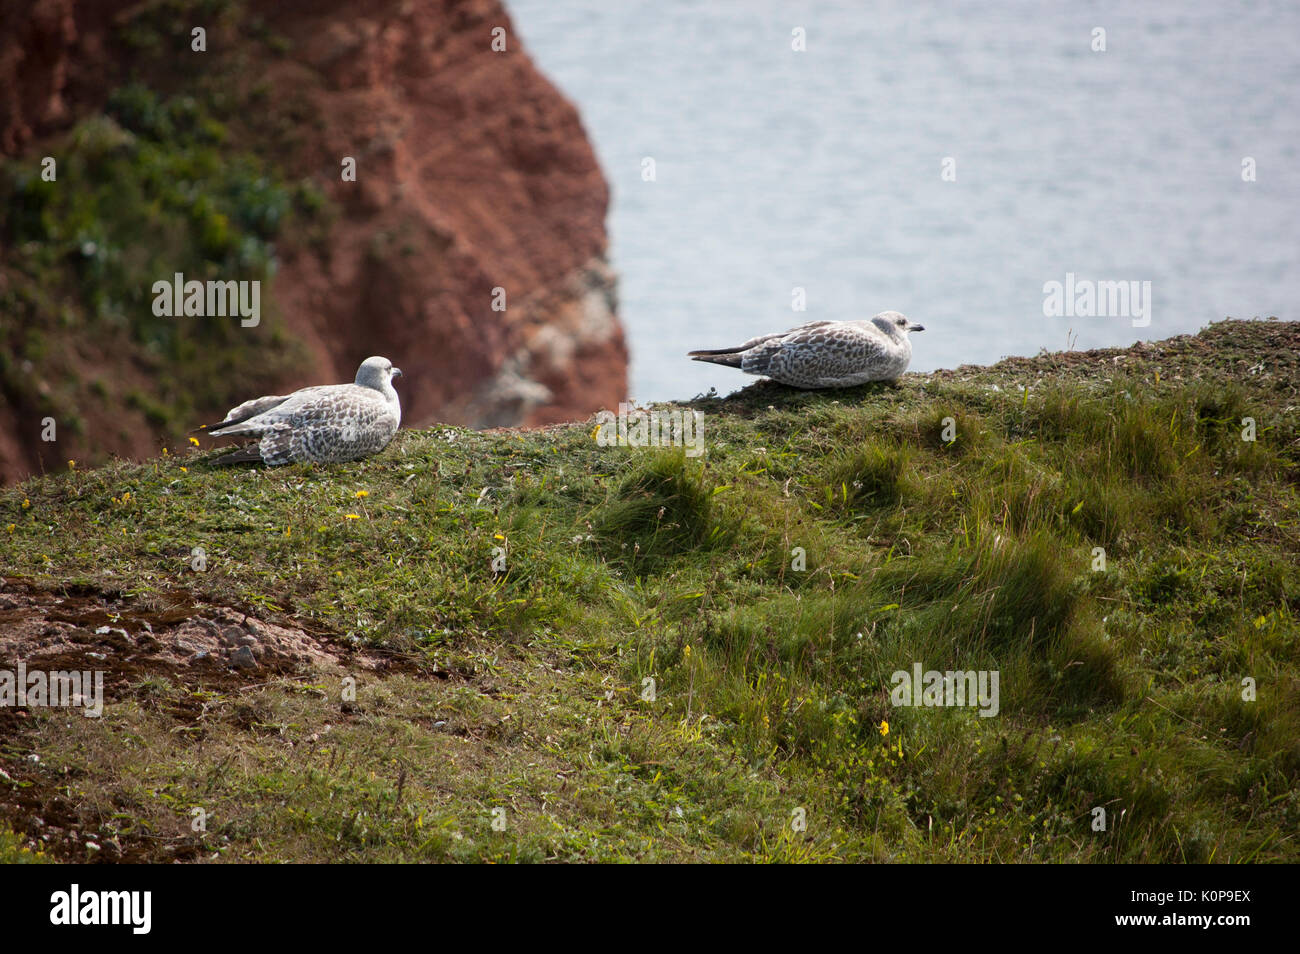 Two birds sitting next to a cliff - Stock Image